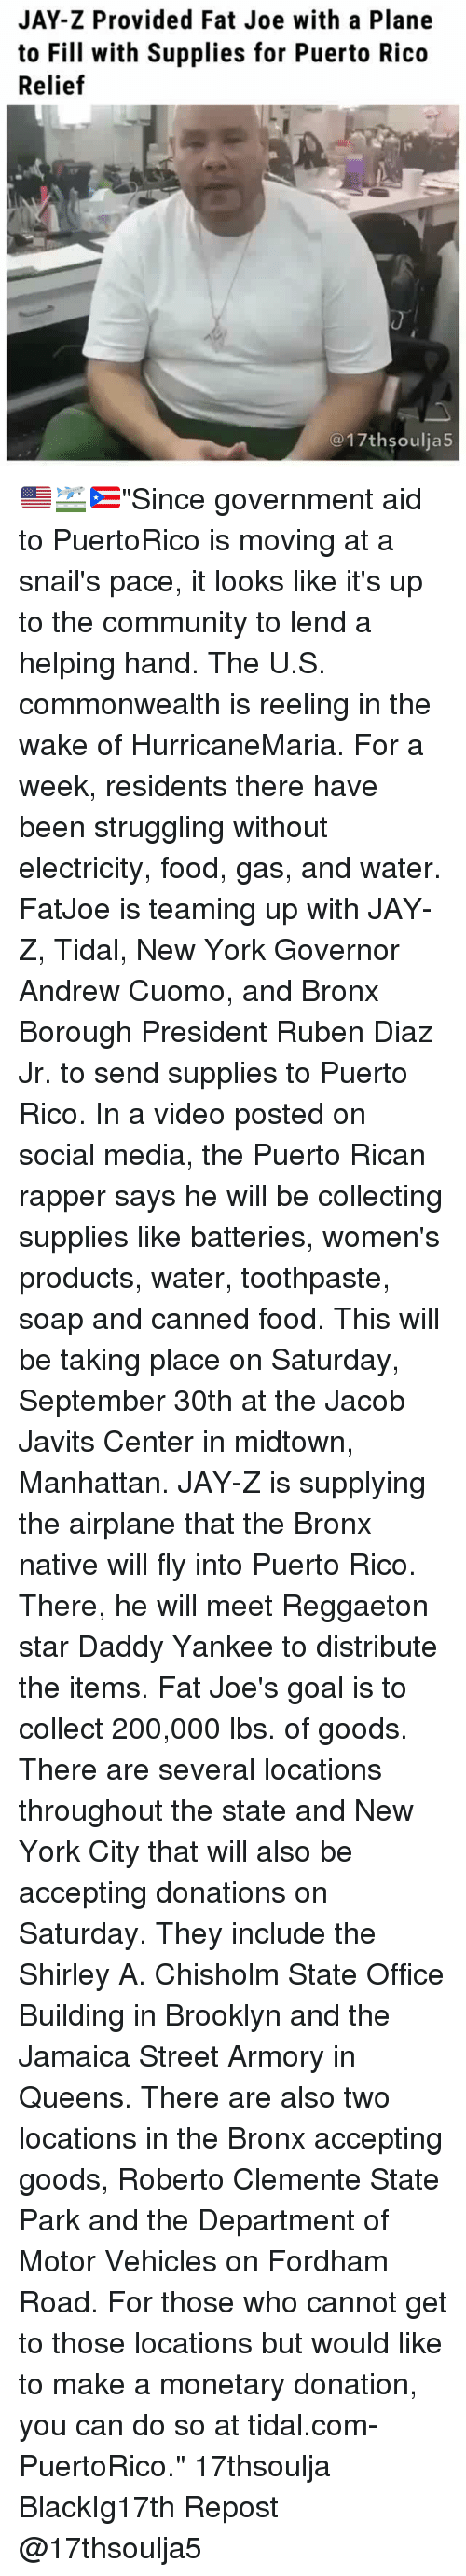 """Bailey Jay, Community, and Fat Joe: JAY-Z Provided Fat Joe with a Plane  to Fill with Supplies for Puerto Rico  Relief  @17thsoulja5 🇺🇸🛫🇵🇷""""Since government aid to PuertoRico is moving at a snail's pace, it looks like it's up to the community to lend a helping hand. The U.S. commonwealth is reeling in the wake of HurricaneMaria. For a week, residents there have been struggling without electricity, food, gas, and water. FatJoe is teaming up with JAY-Z, Tidal, New York Governor Andrew Cuomo, and Bronx Borough President Ruben Diaz Jr. to send supplies to Puerto Rico. In a video posted on social media, the Puerto Rican rapper says he will be collecting supplies like batteries, women's products, water, toothpaste, soap and canned food. This will be taking place on Saturday, September 30th at the Jacob Javits Center in midtown, Manhattan. JAY-Z is supplying the airplane that the Bronx native will fly into Puerto Rico. There, he will meet Reggaeton star Daddy Yankee to distribute the items. Fat Joe's goal is to collect 200,000 lbs. of goods. There are several locations throughout the state and New York City that will also be accepting donations on Saturday. They include the Shirley A. Chisholm State Office Building in Brooklyn and the Jamaica Street Armory in Queens. There are also two locations in the Bronx accepting goods, Roberto Clemente State Park and the Department of Motor Vehicles on Fordham Road. For those who cannot get to those locations but would like to make a monetary donation, you can do so at tidal.com-PuertoRico."""" 17thsoulja BlackIg17th Repost @17thsoulja5"""